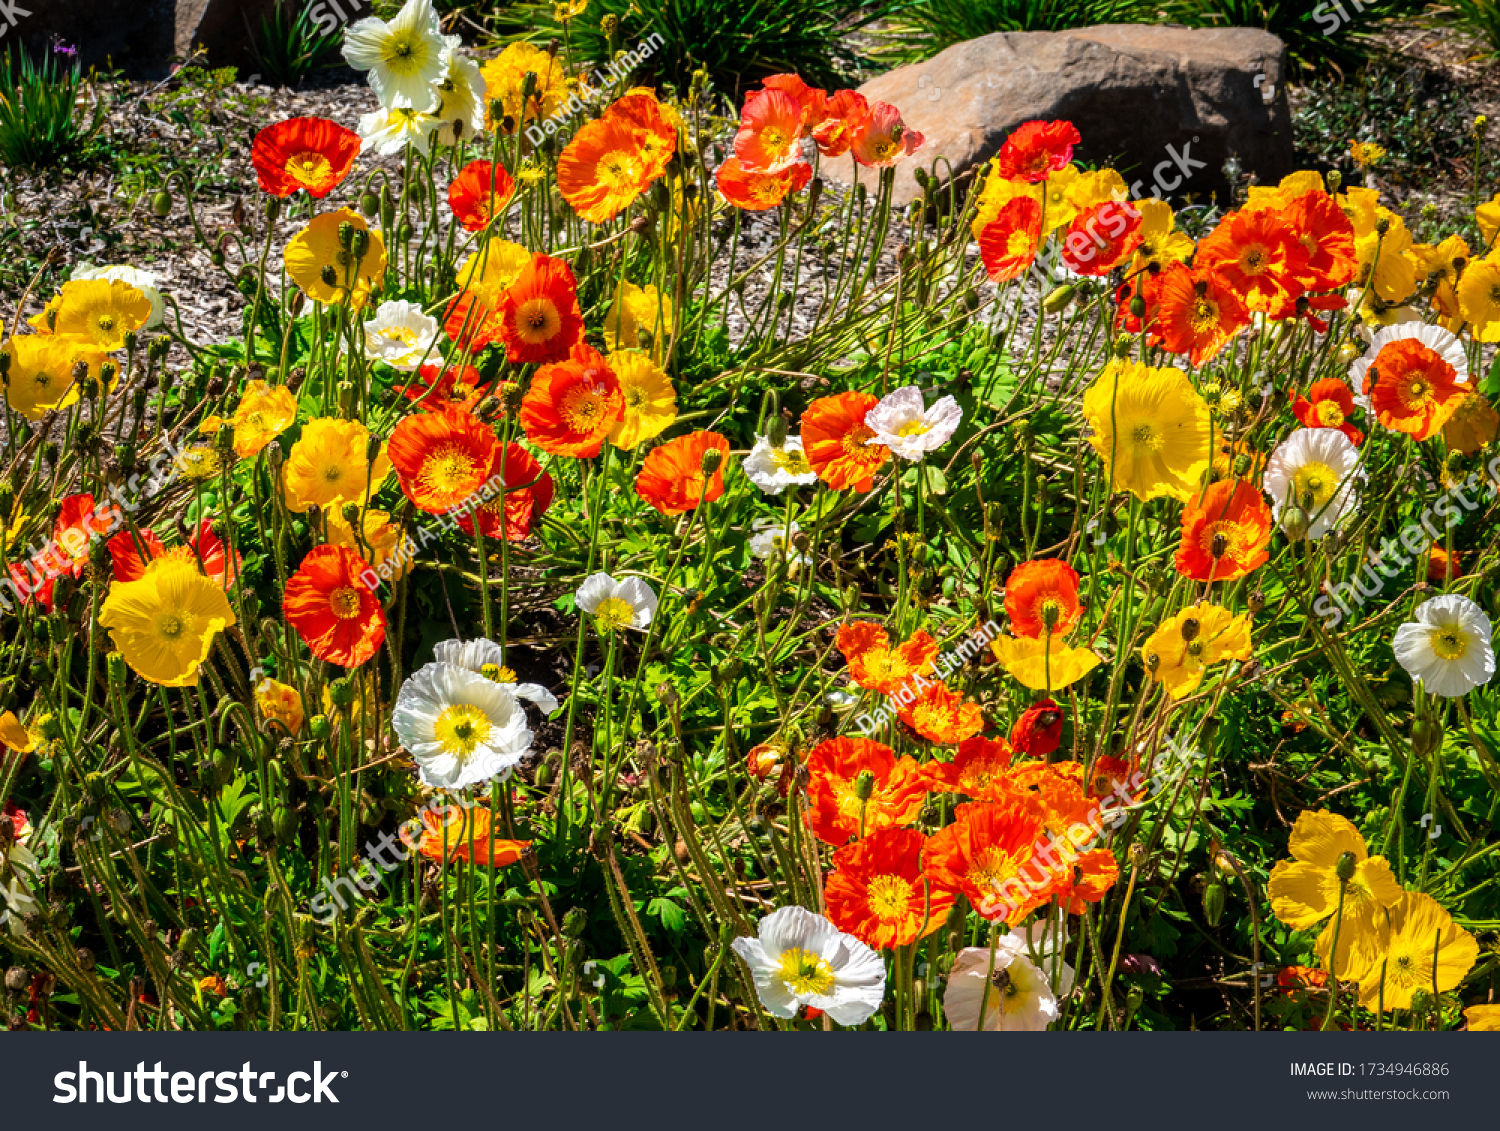 Colorful orange, yellow and white Icelandic (Iceland) poppies (Papaver nudicaule) bloom from late winter to early summer on the central coast of California.